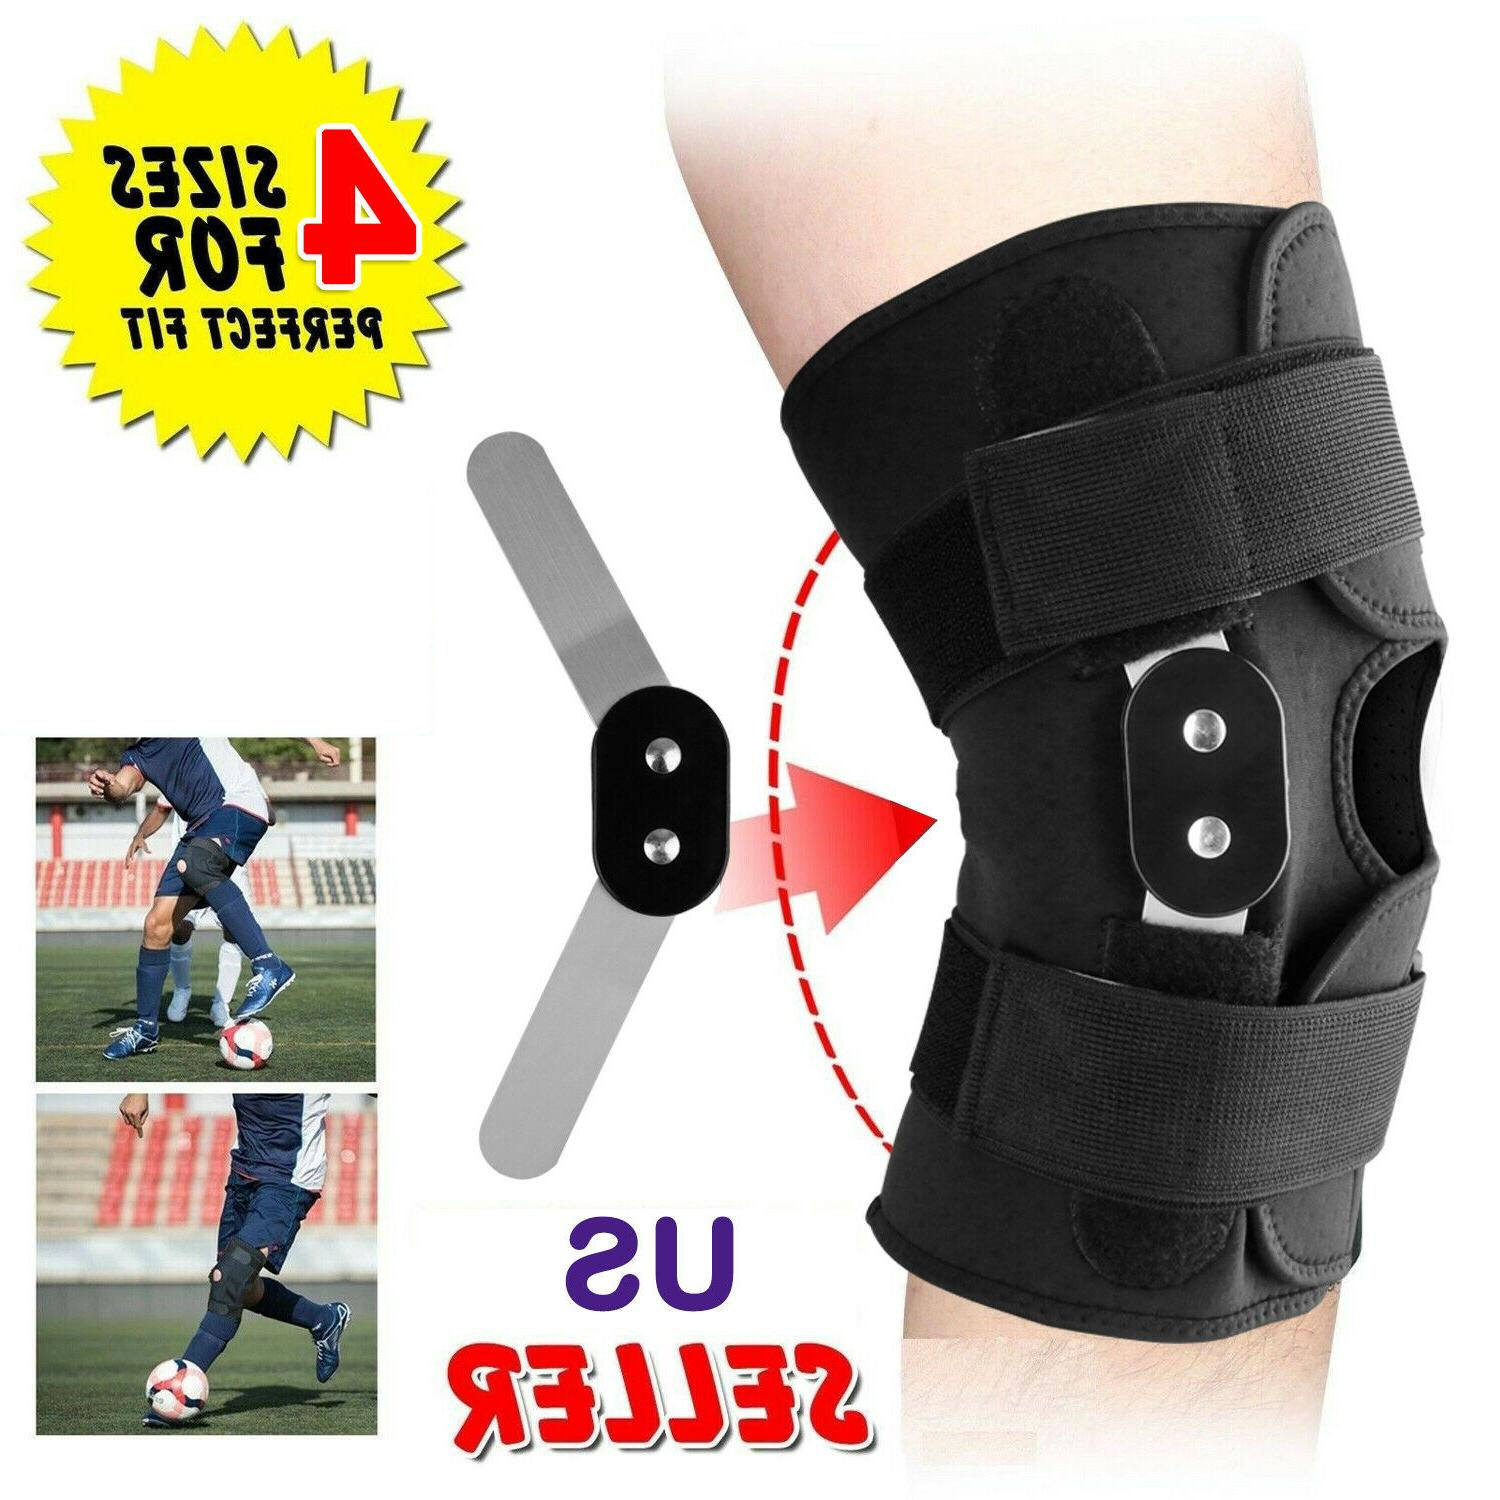 adjustable hinged knee patella support brace sleeve